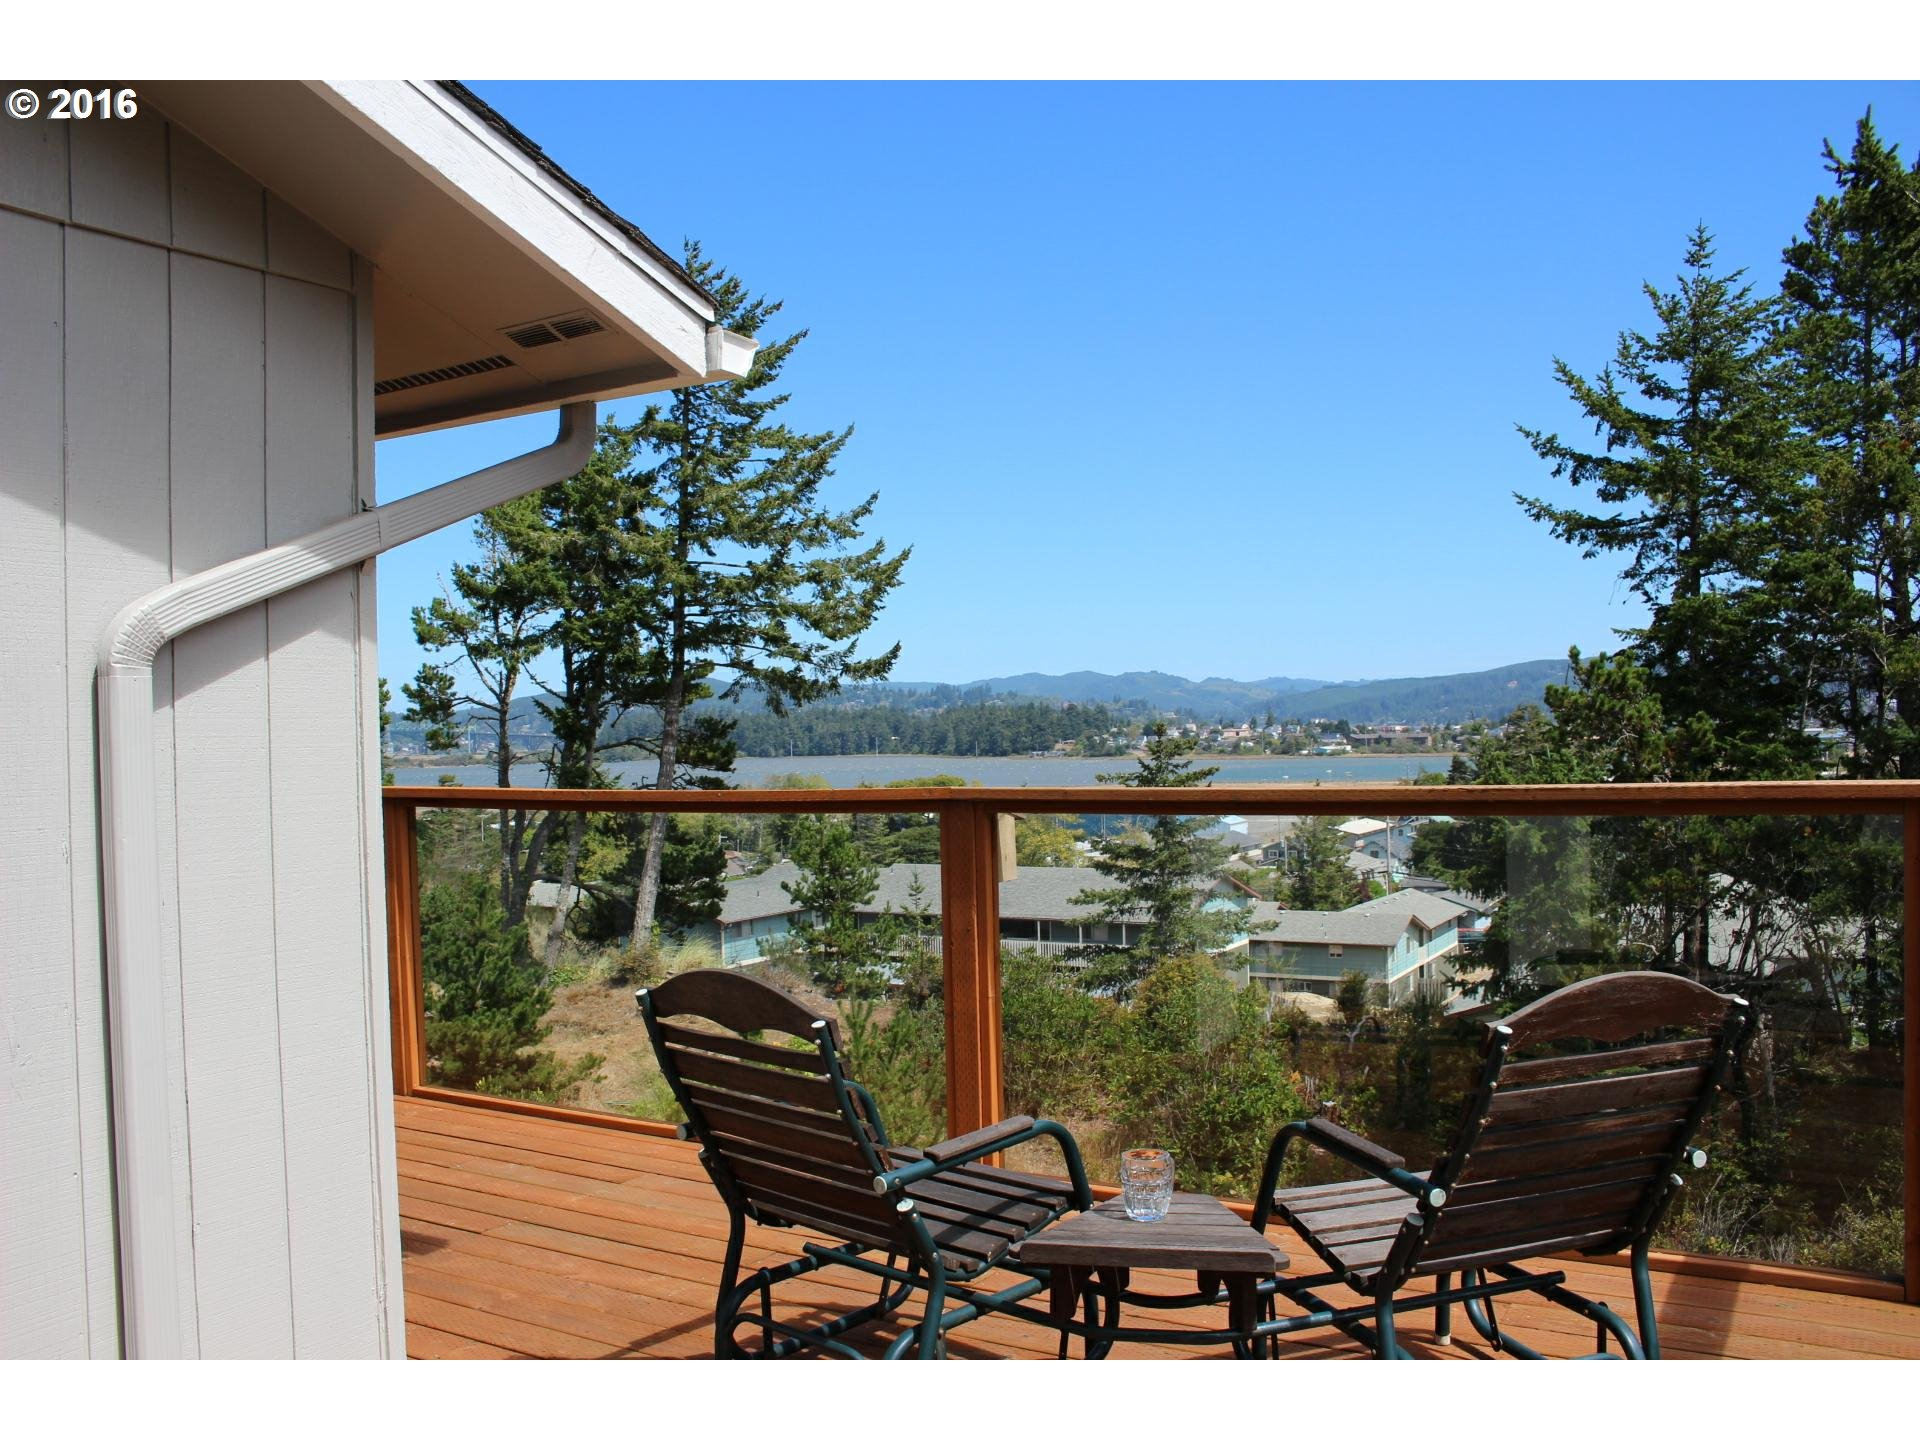 1999 1/2 ASH CT, North Bend, OR 97459